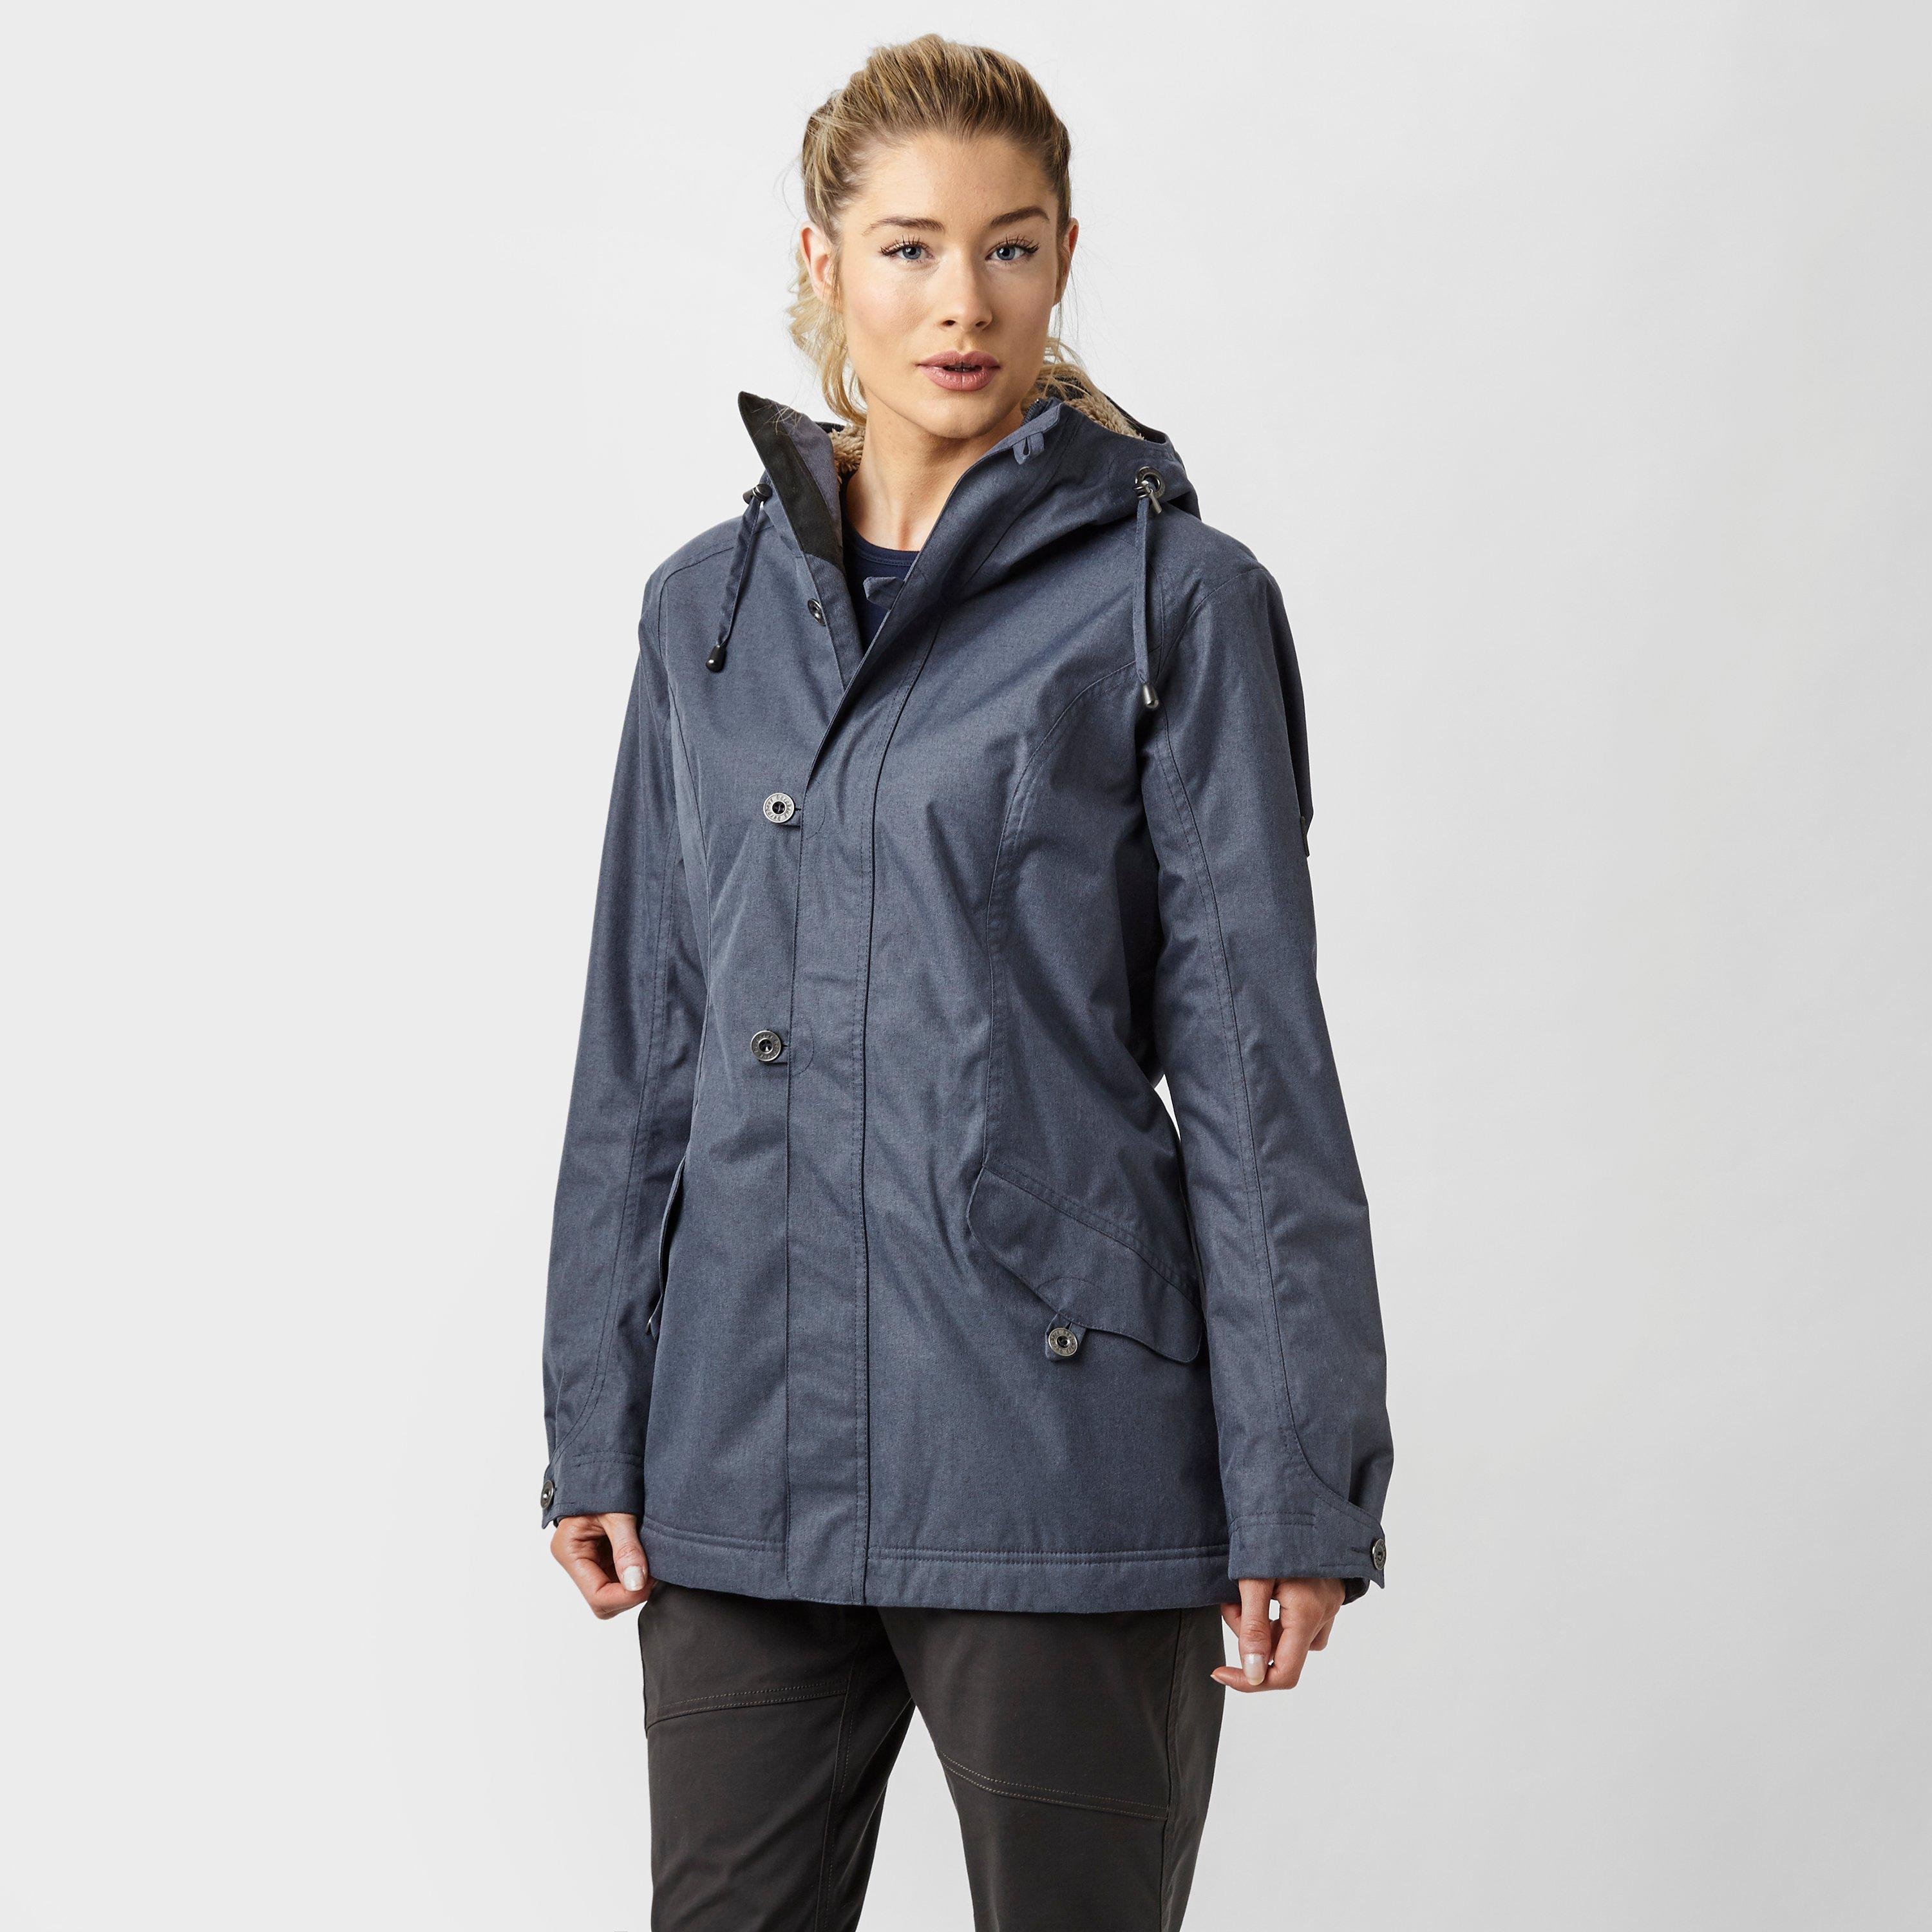 Berghaus womens waterproof jackets